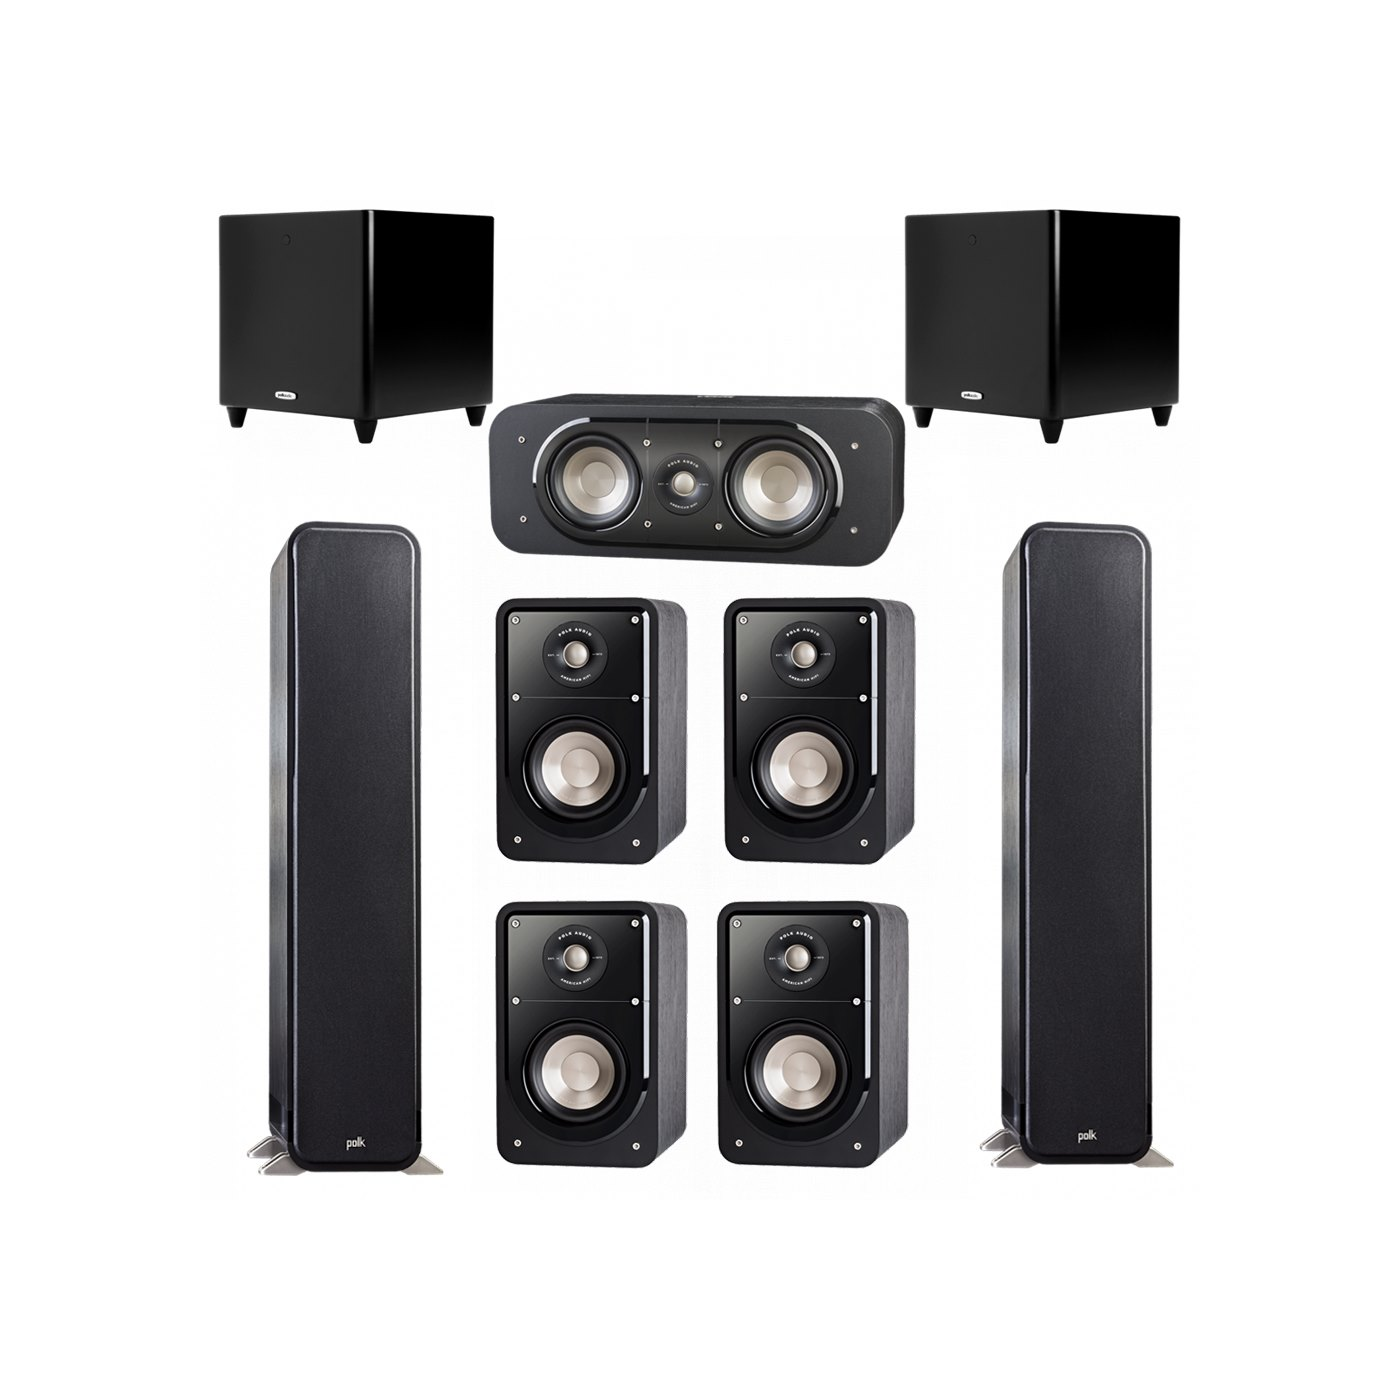 Polk Audio Signature 7.2 System with 2 S55 Tower Speaker, 1 Polk S30 Center Speaker, 4 Polk S15 Bookshelf Speaker, 2 Polk DSW PRO 550 wi Subwoofer